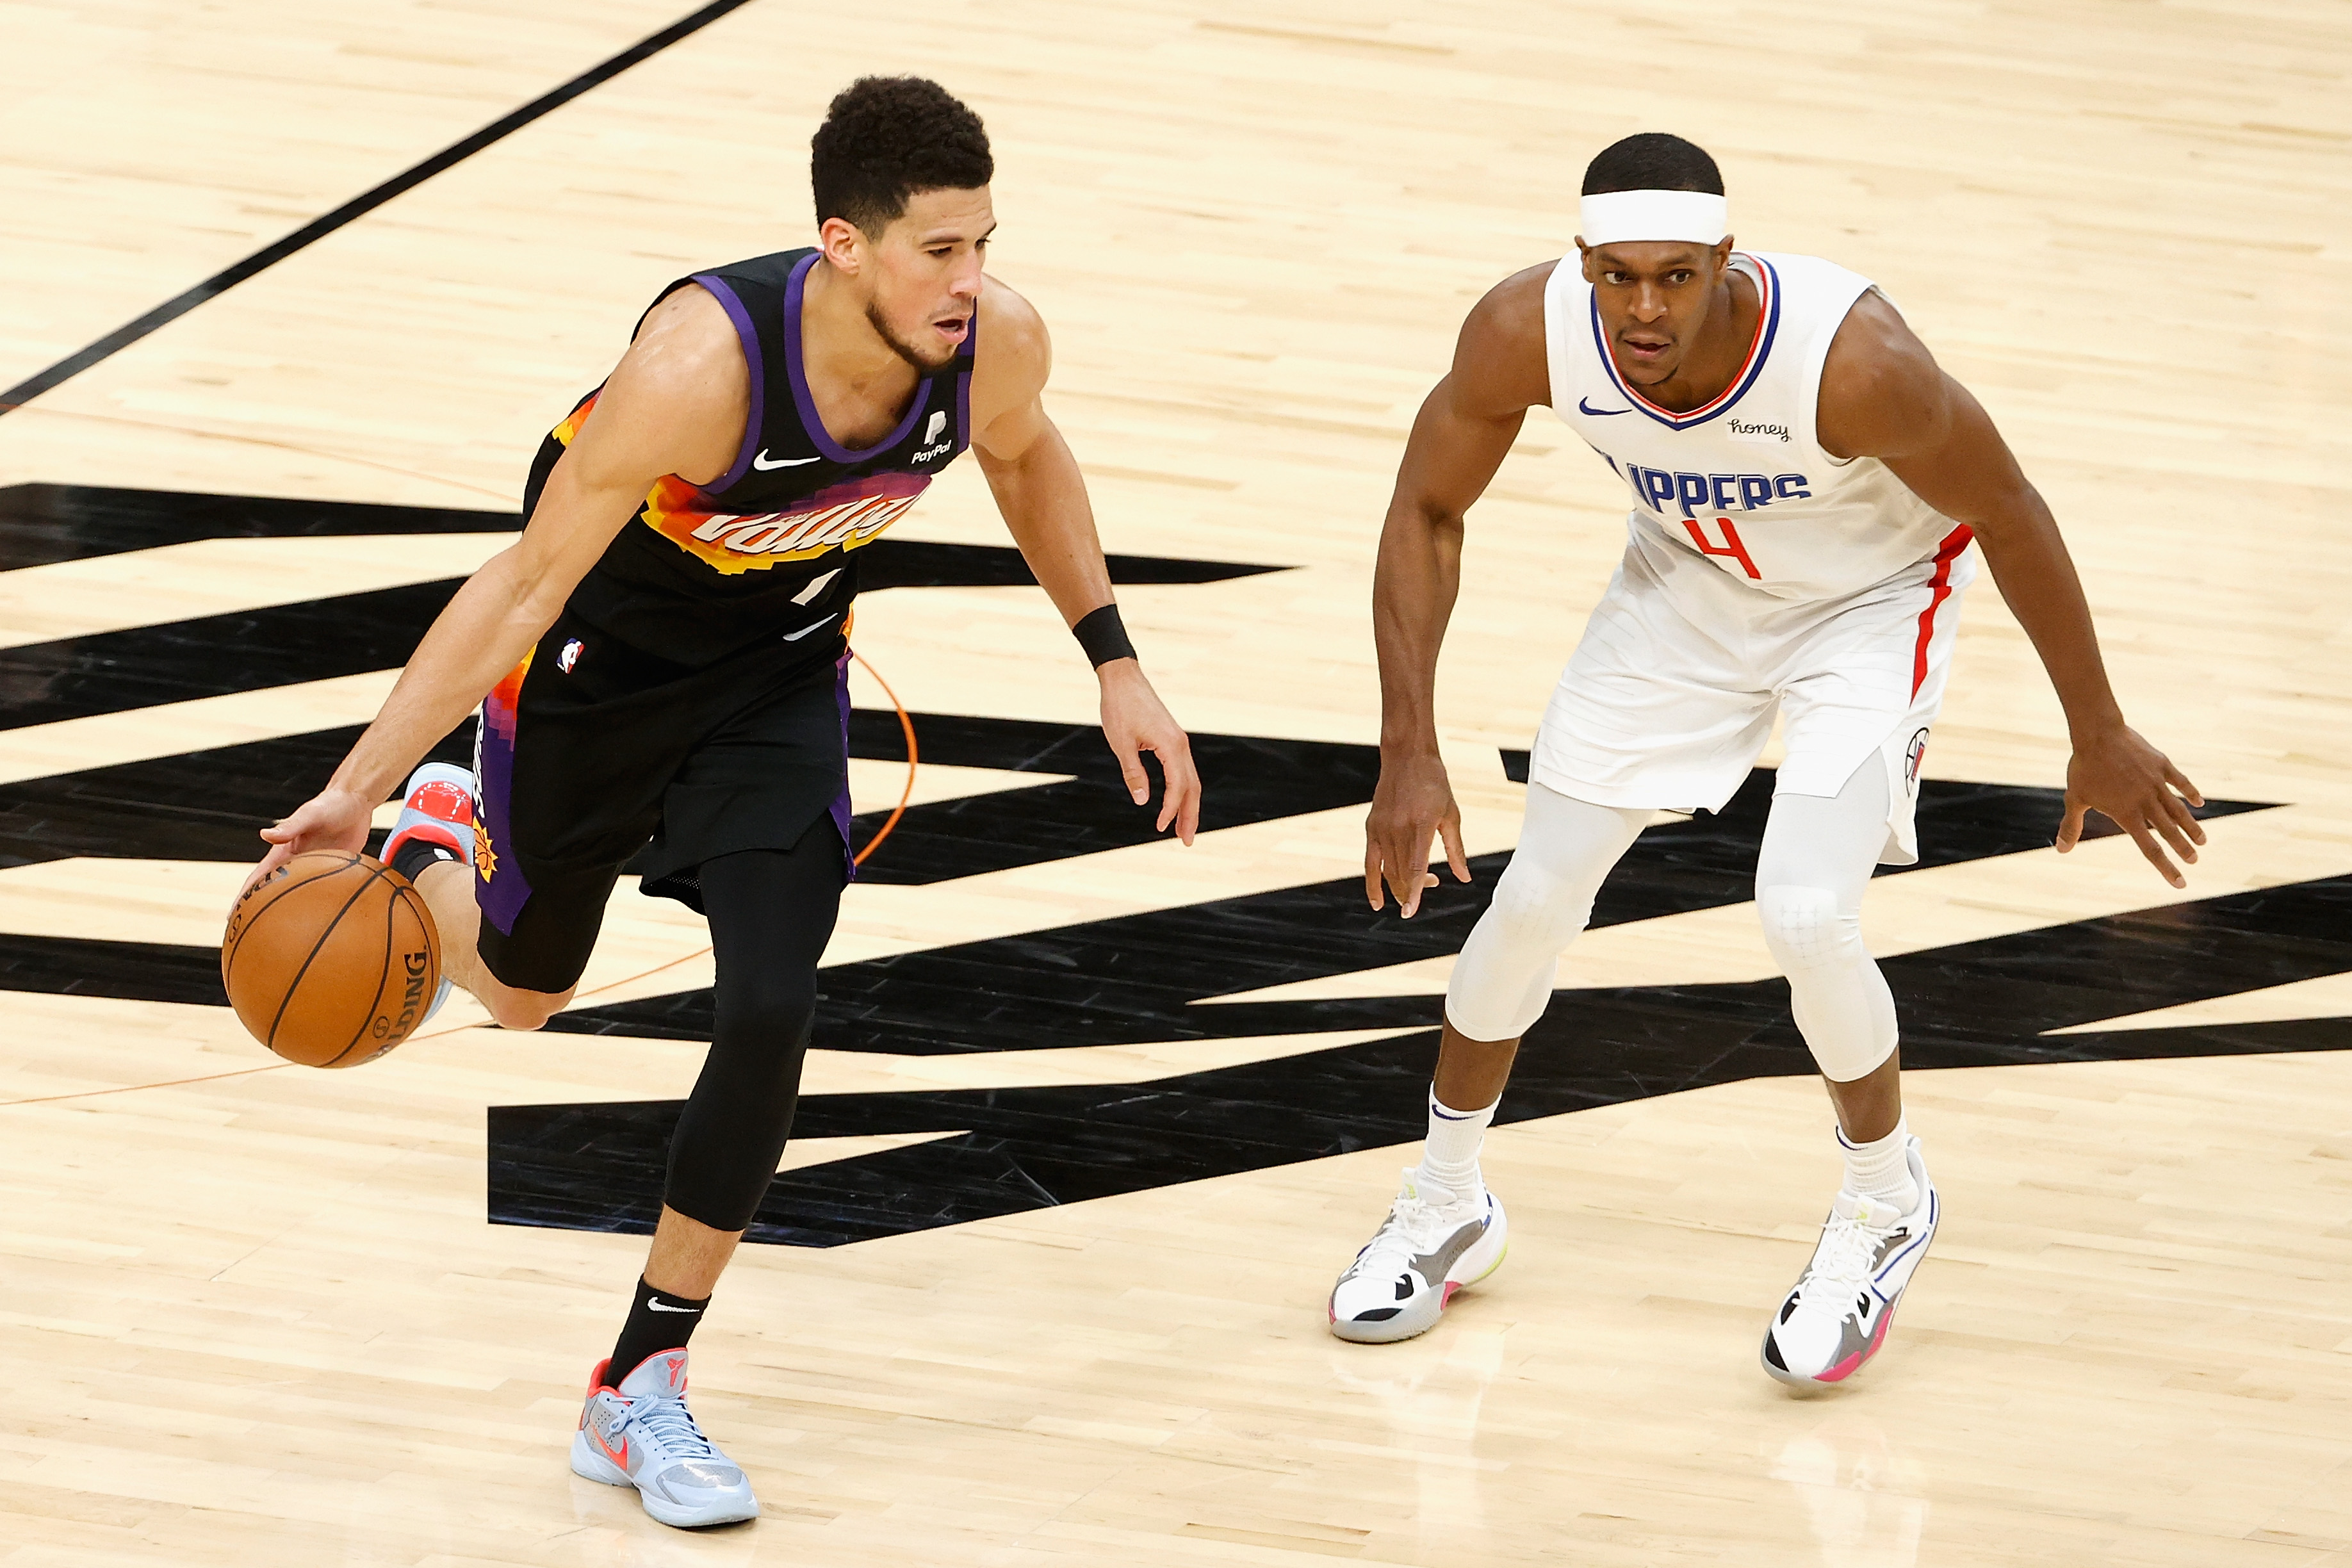 Devin Booker of the Phoenix Suns handles the ball against Rajon Rondo of the LA Clippers during the NBA game at Phoenix Suns Arena on April 28, 2021 in Phoenix, Arizona. The Suns defeated the Clippers 109-101.